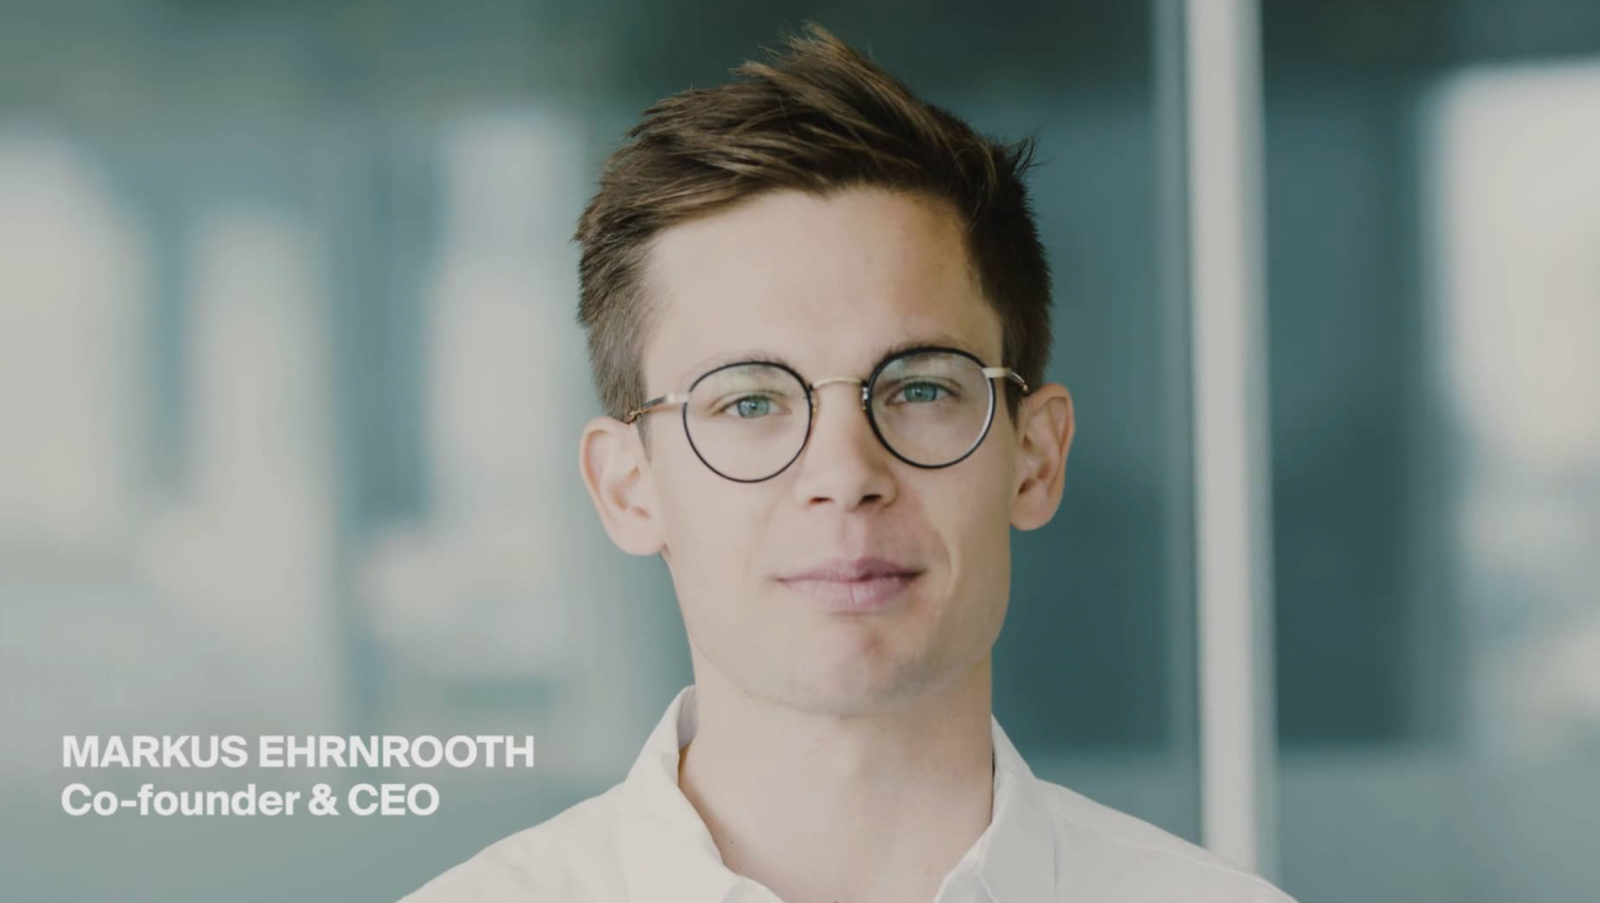 Markus Enrnrooth CEO & Co-Founder KNOMI